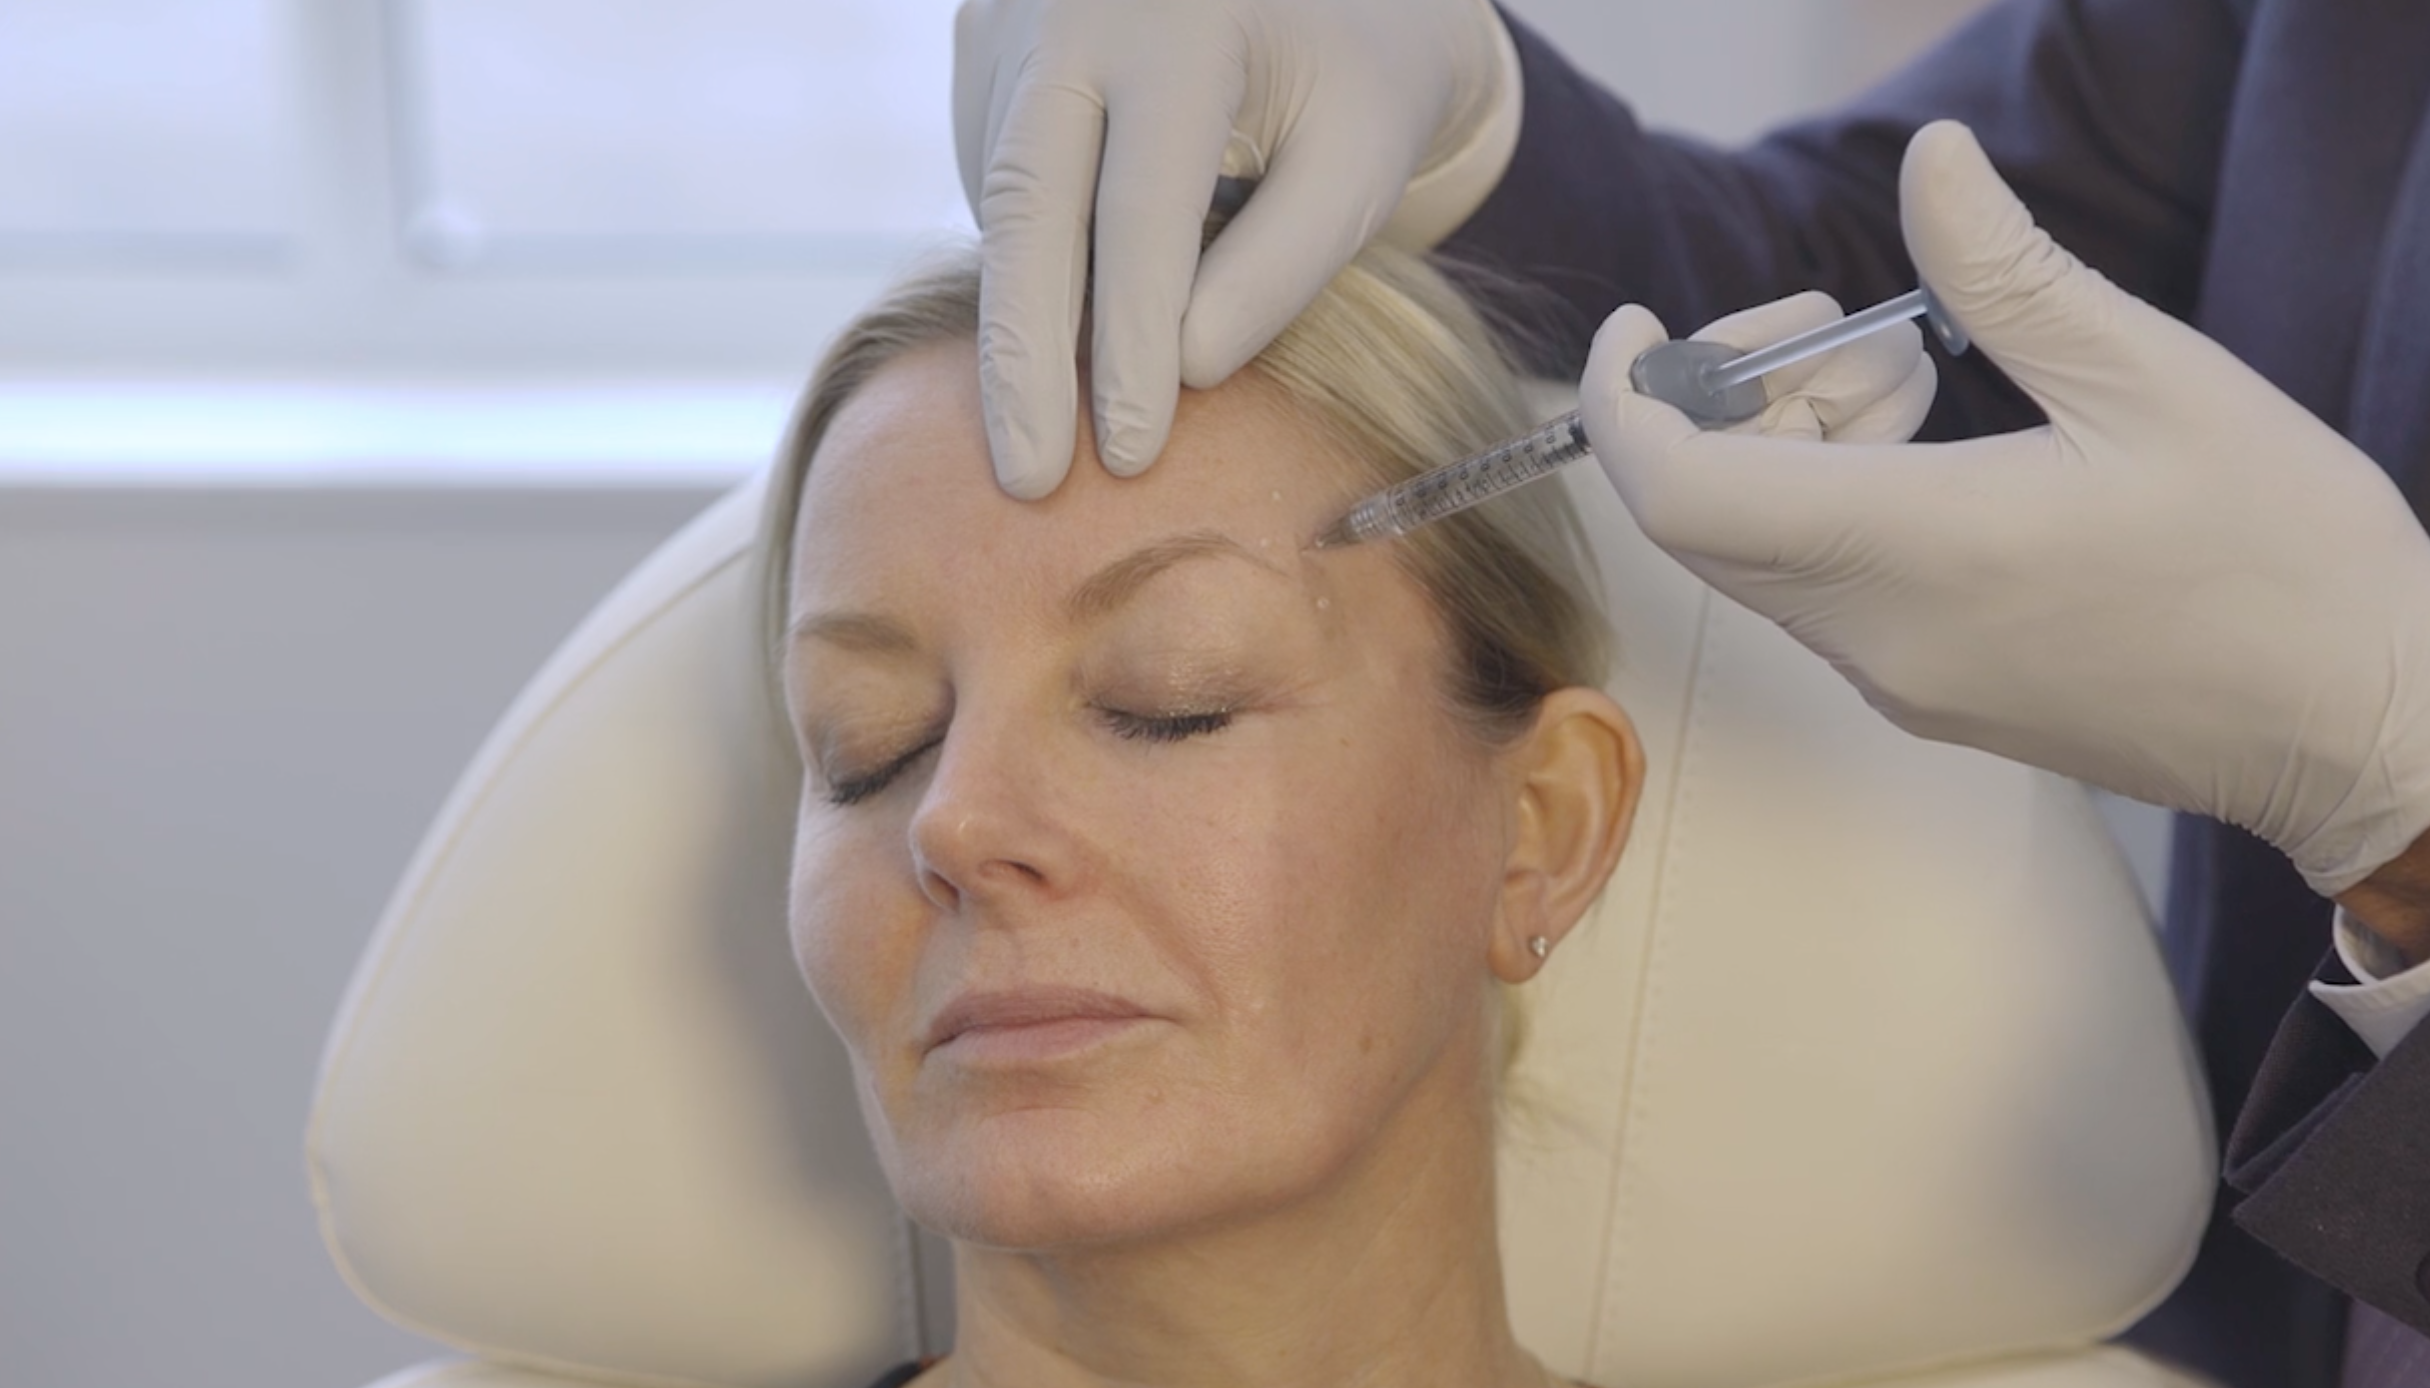 Treatment of the Glabellar Complex and crow's feet with Botulinum Toxin